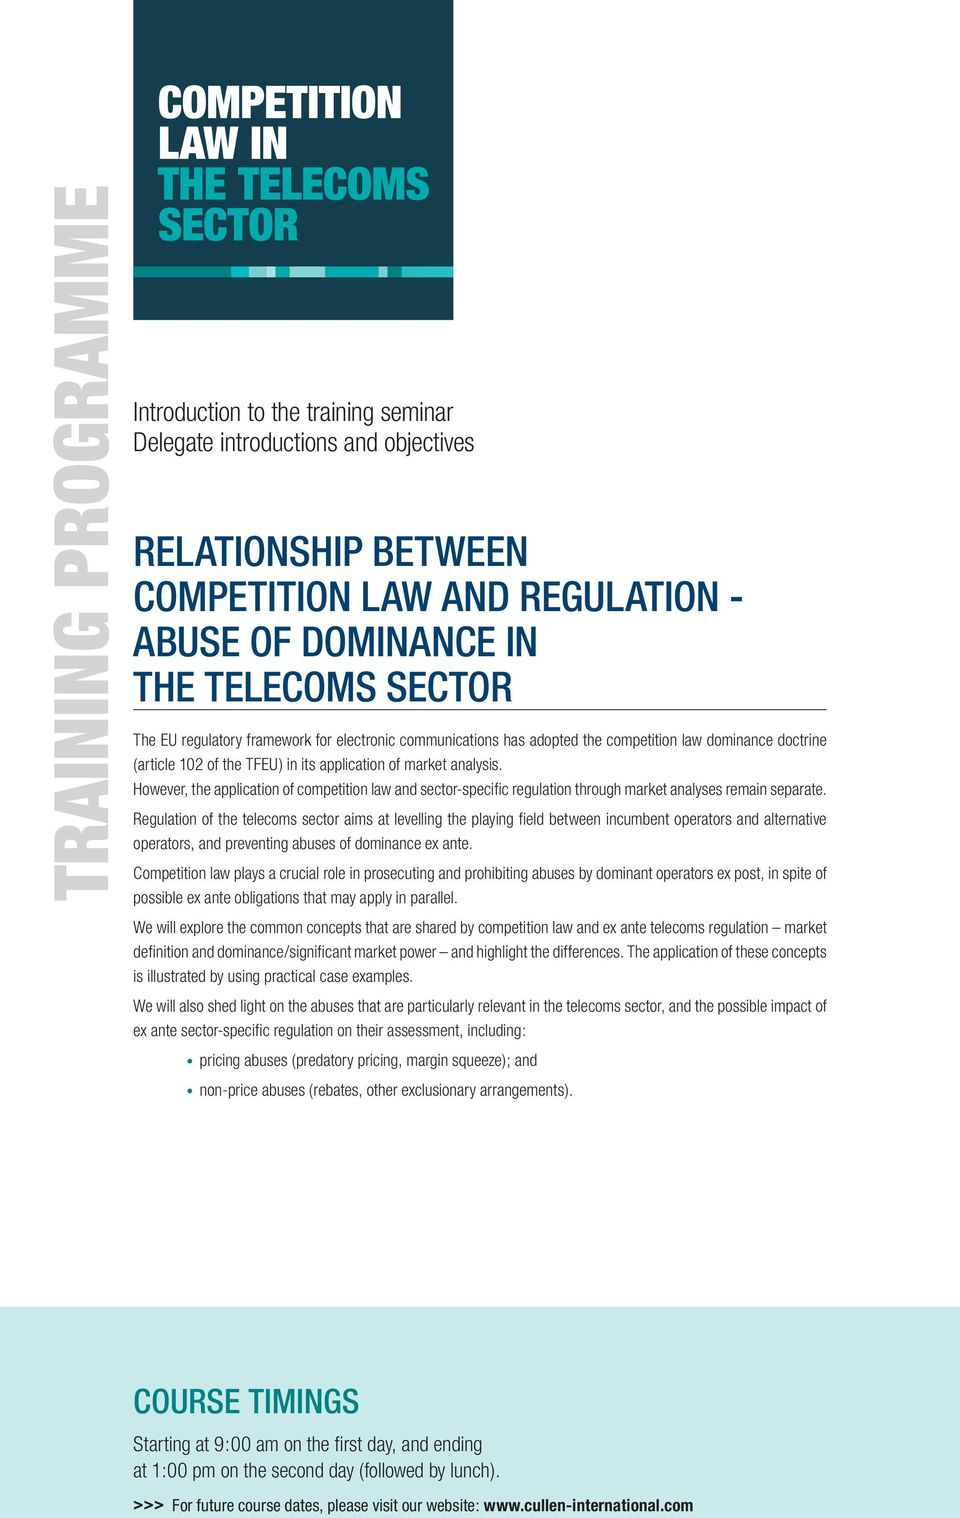 However, the application of competition law and sector-specific regulation through market analyses remain separate.